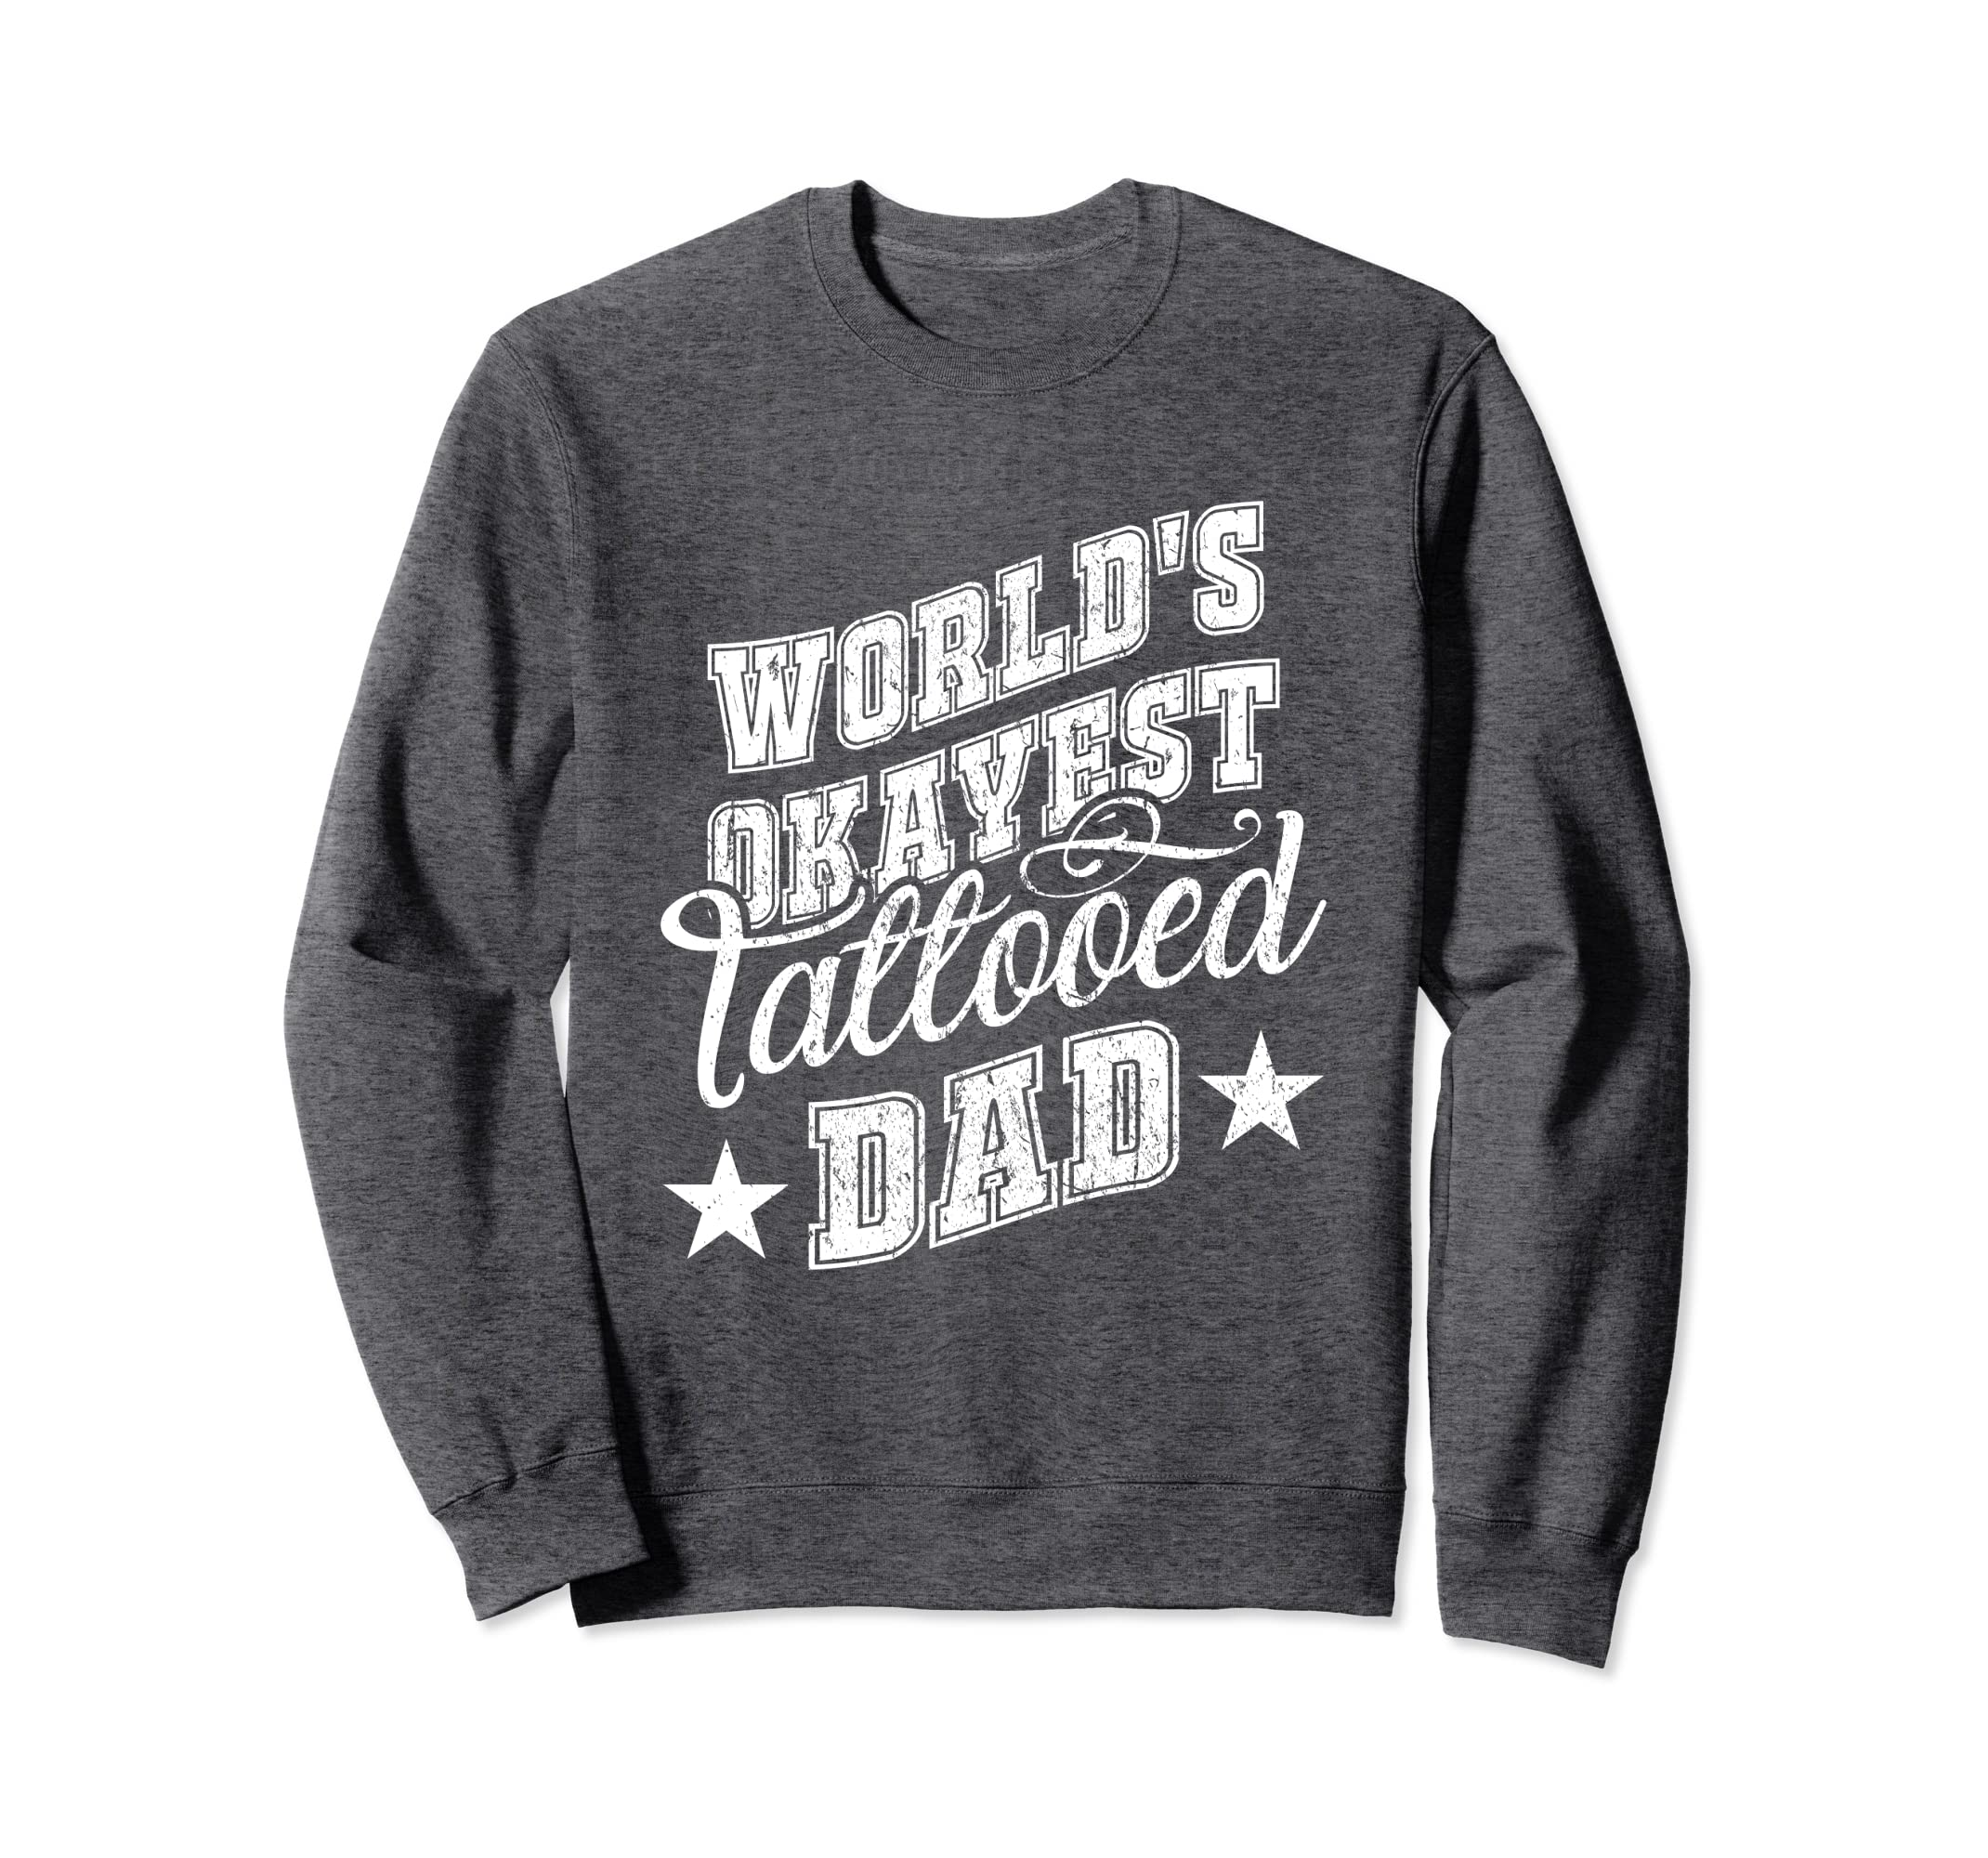 f220887b Amazon.com: Worlds Okayest Tattooed Dad Sweatshirt Inked Daddy Papa Gift:  Clothing